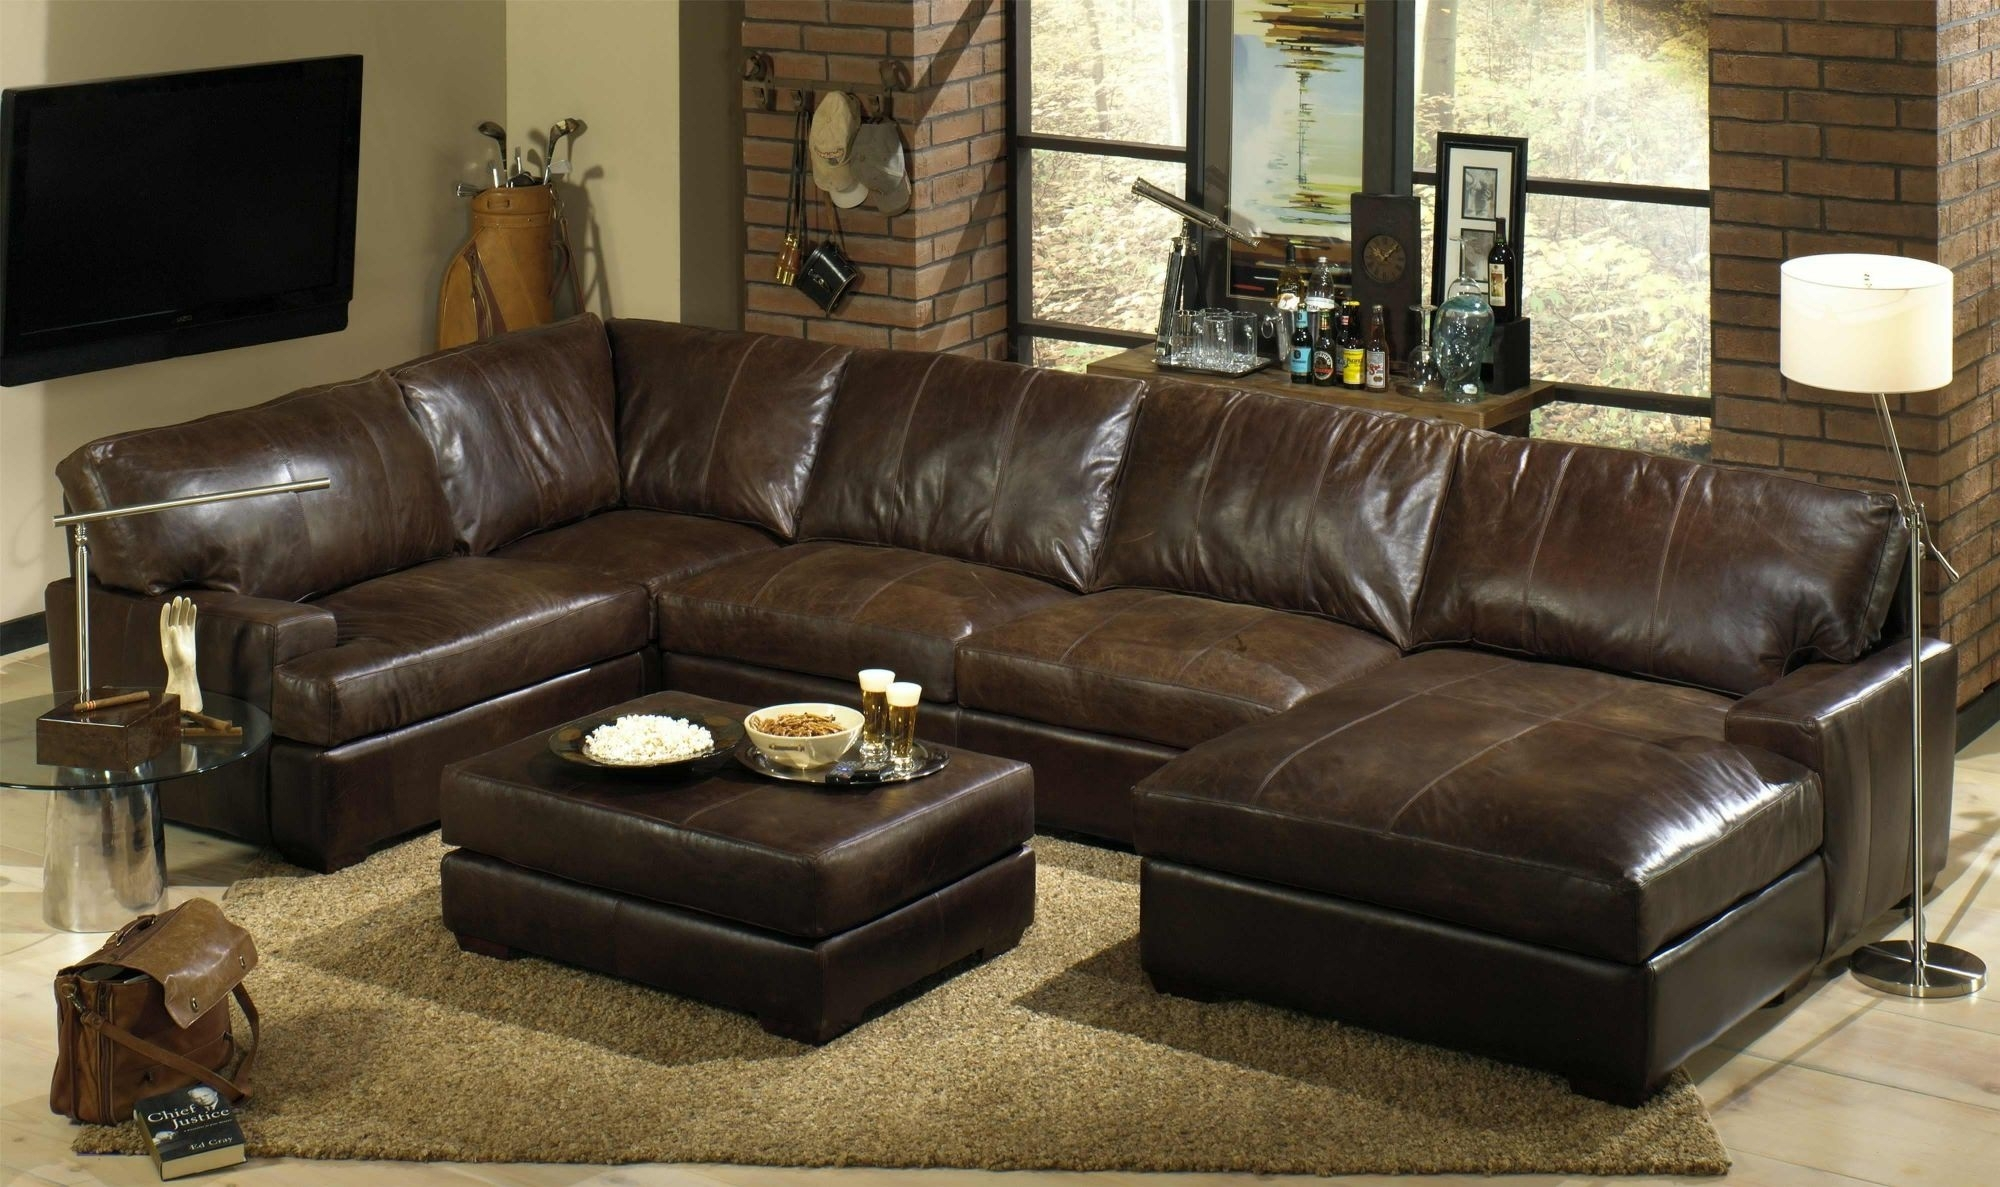 Amazing Sectional Sofa Design Small Leather Chaise Pict Of With throughout Sectional Sofas With Recliners for Small Spaces